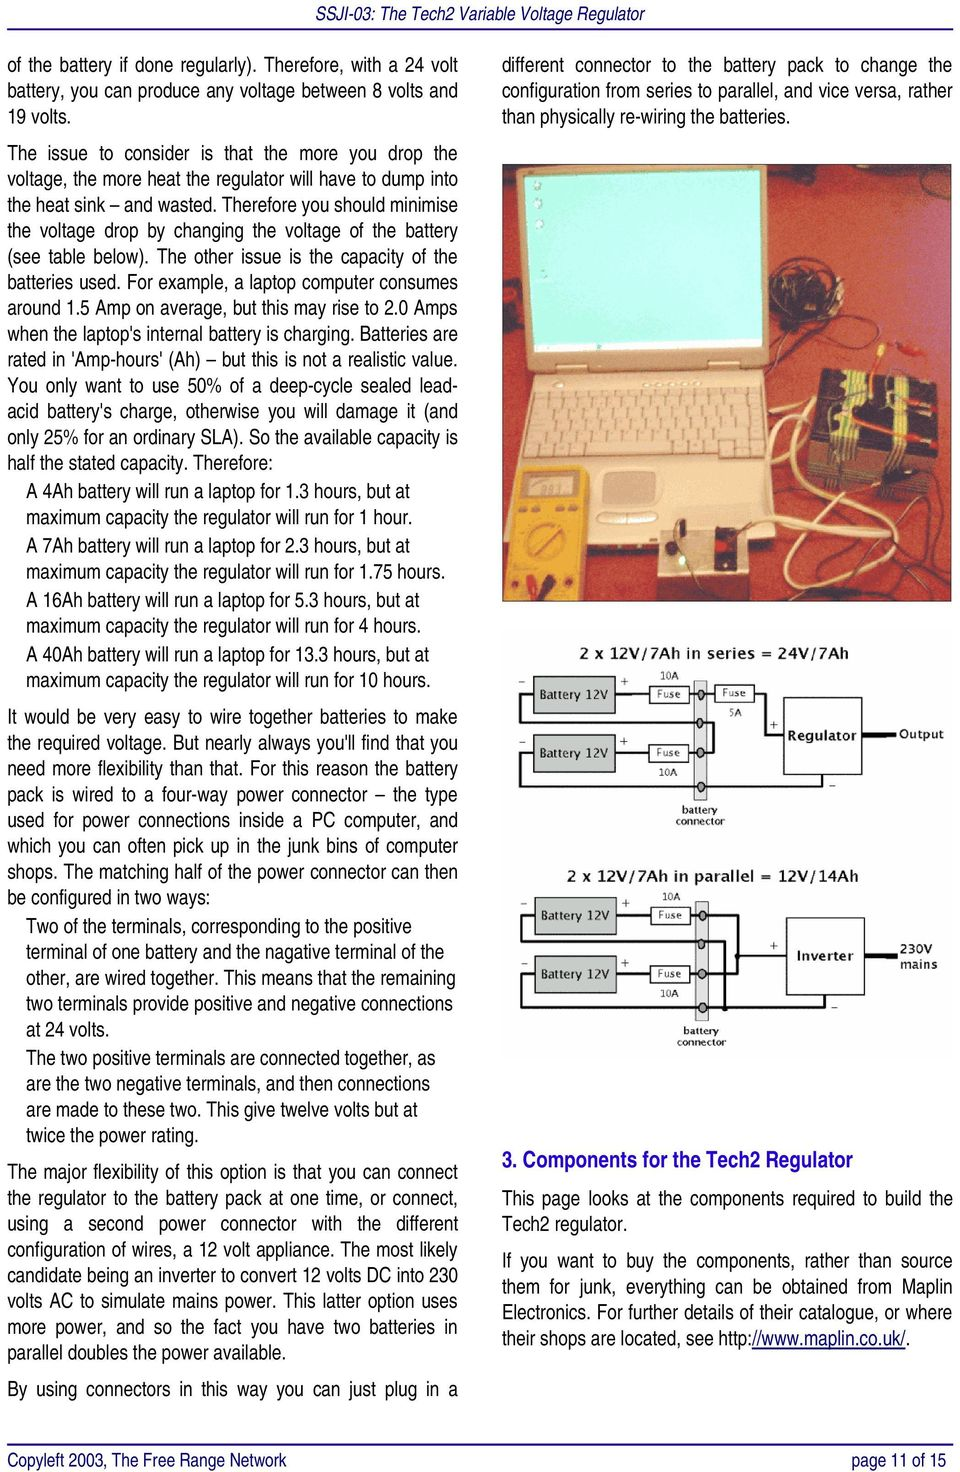 Ssji 03 The Tech2 Variable Voltage Regulator Pdf L200 12v Constant Battery Charger Circuit This Therefore You Should Minimise Drop By Changing Of See